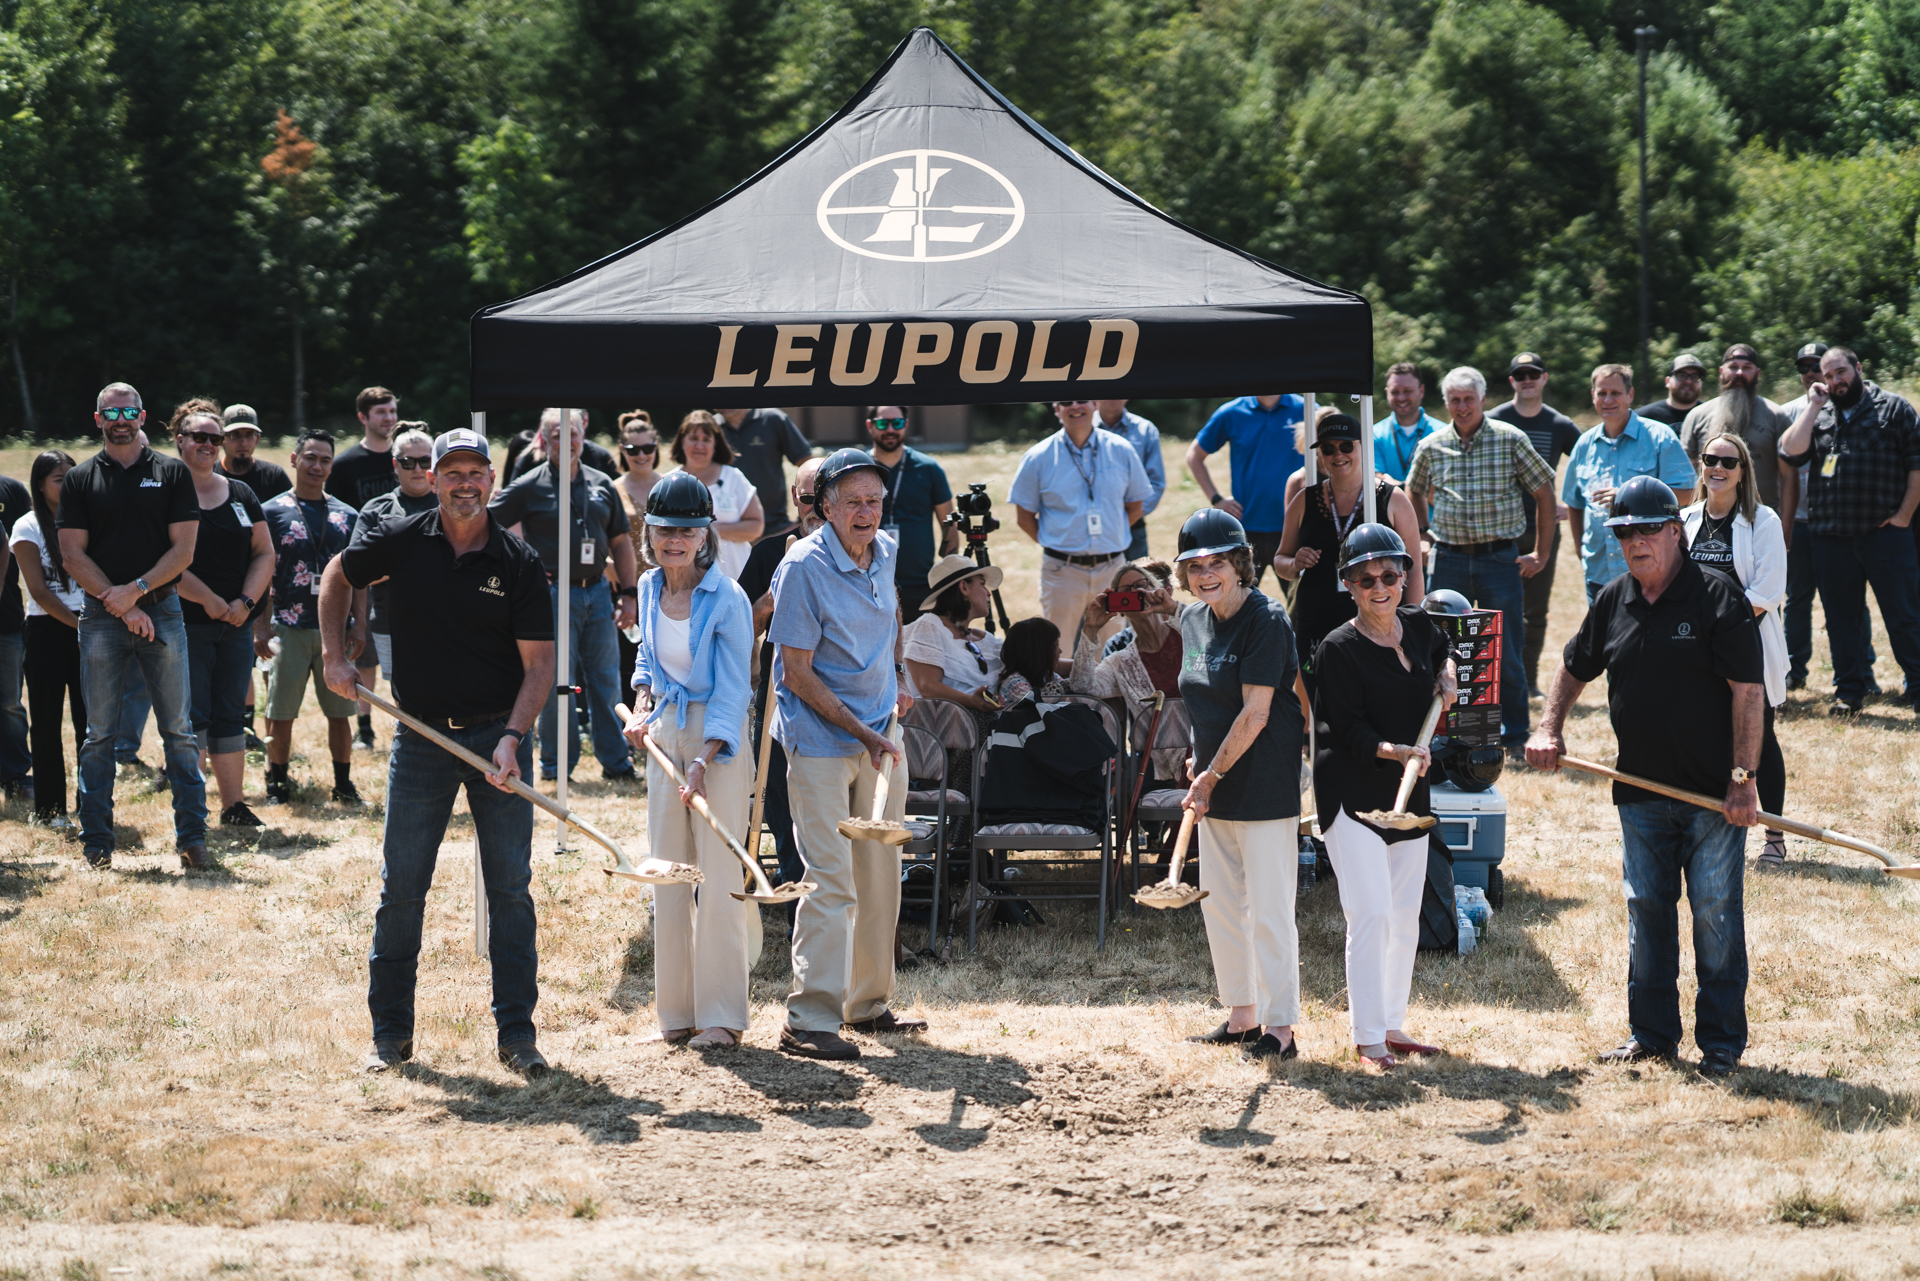 Leupold Breaks Ground on New Product Distribution Center